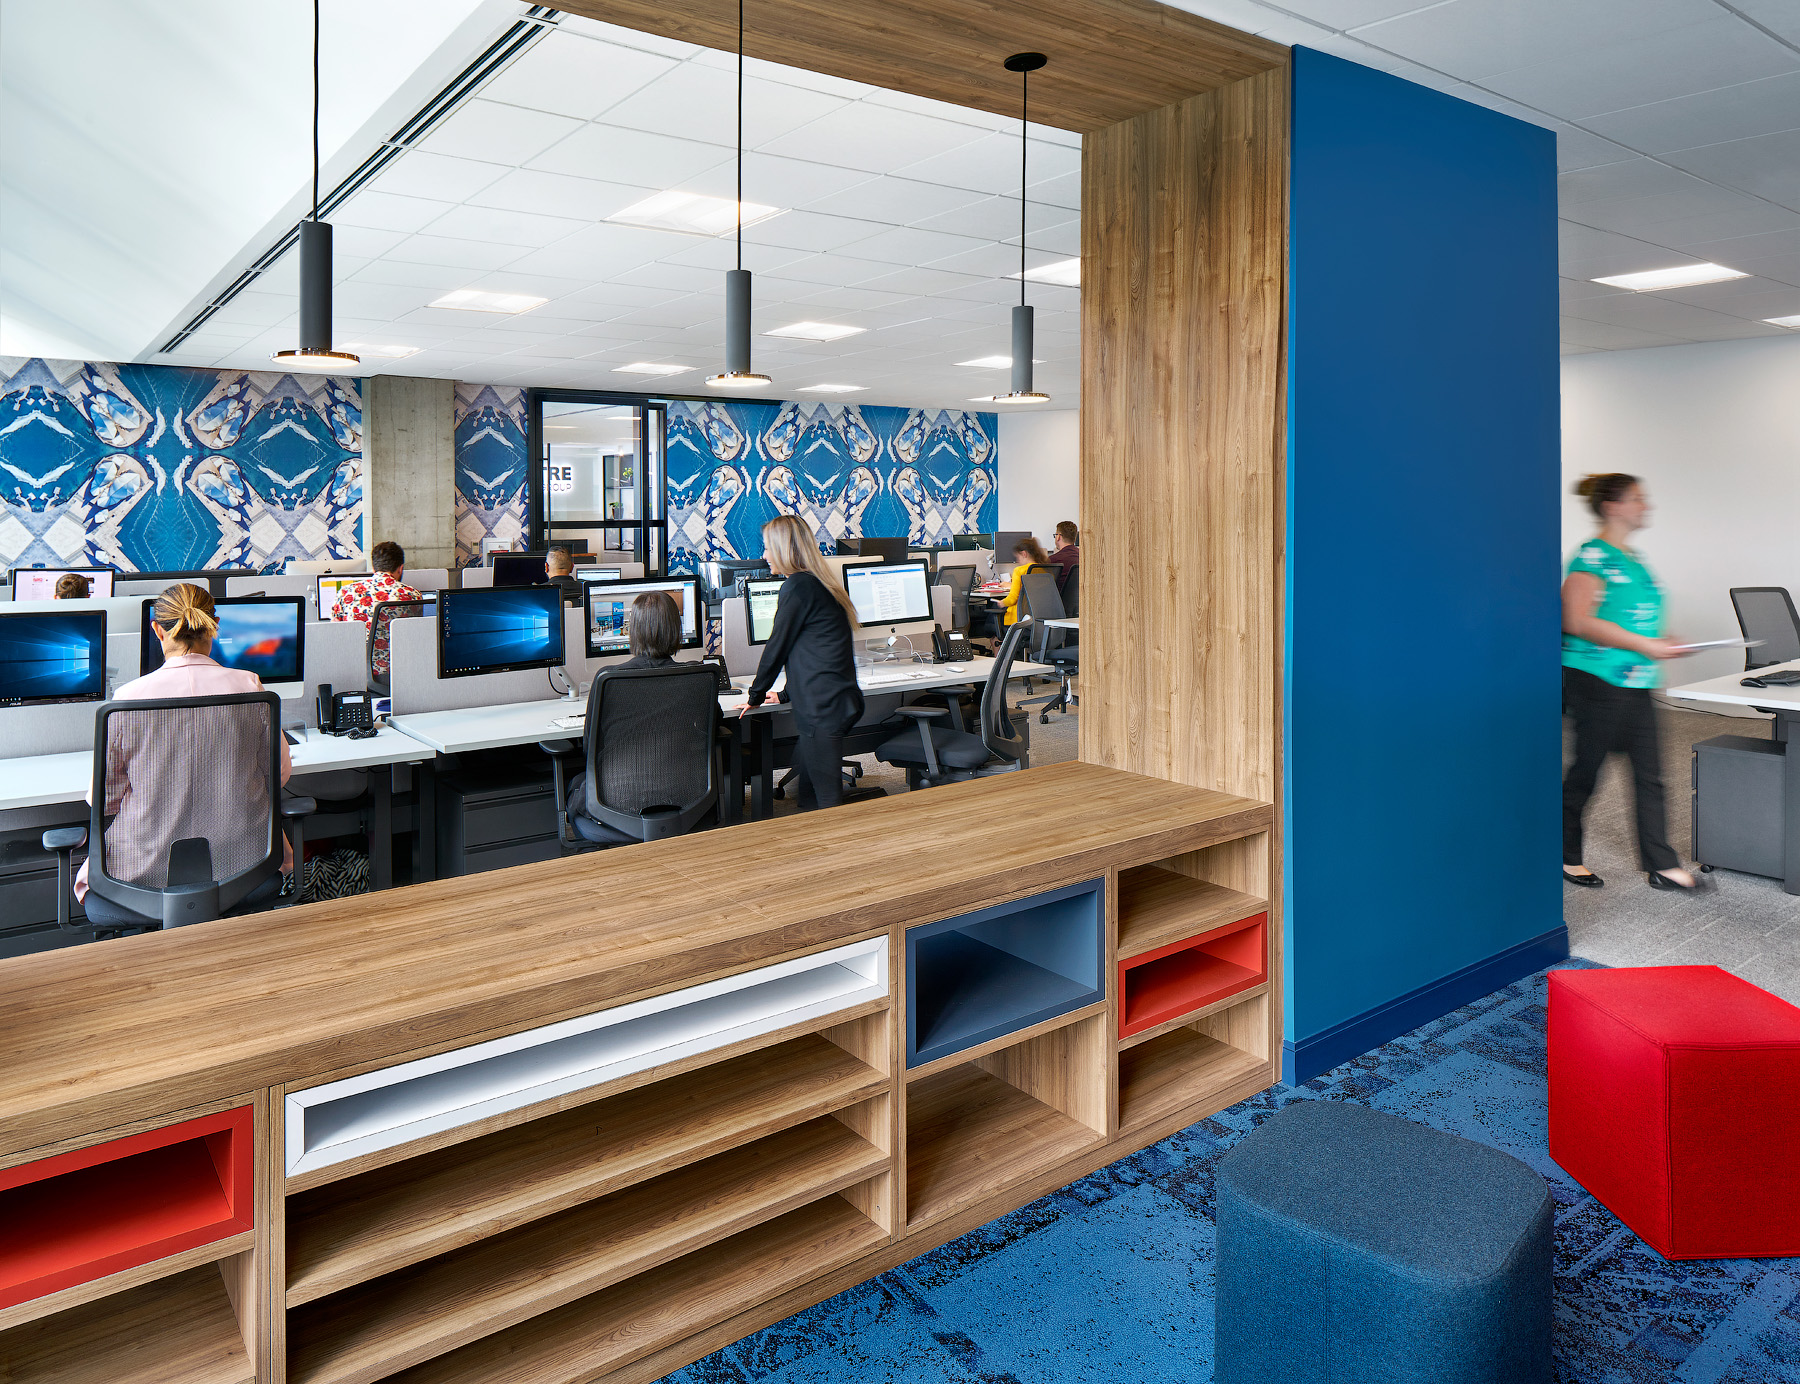 Flight Centre Vancouver work stations with people at desks, patterned wallpaper, and wood shelving with blue accents